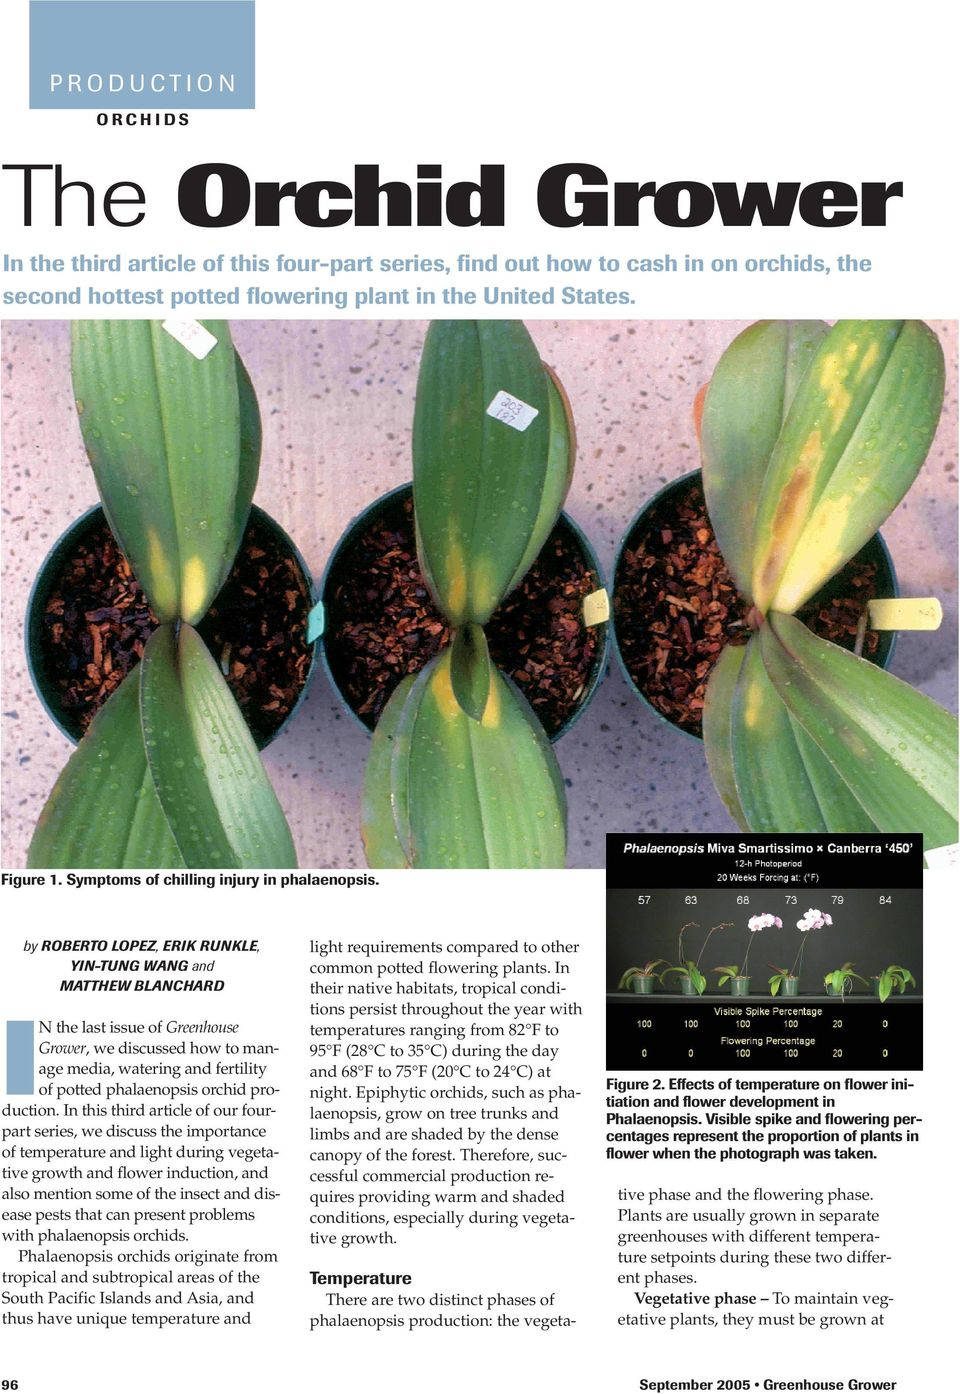 by ROBERTO LOPEZ, ERIK RUNKLE, YIN-TUNG WANG and MATTHEW BLANCHARD N the last issue of Greenhouse Grower, we discussed how to manage media, watering and fertility of potted phalaenopsis orchid